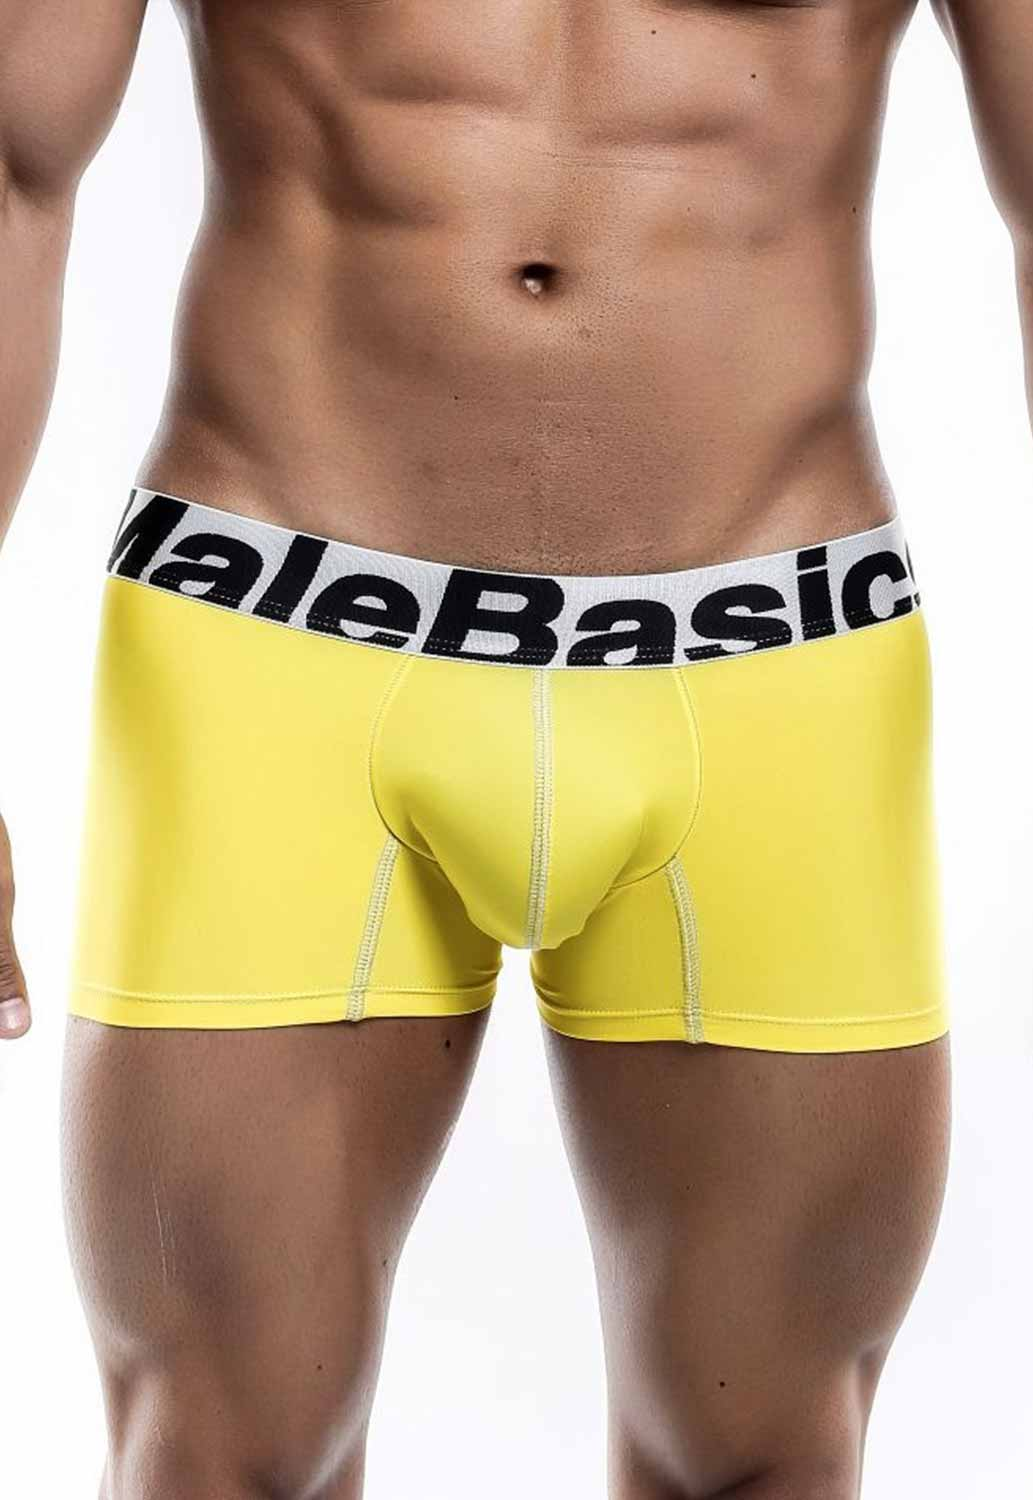 thumbnail 11 - Malebasics Men's Microfiber Short Boxer MBM01Y Men's Trunks